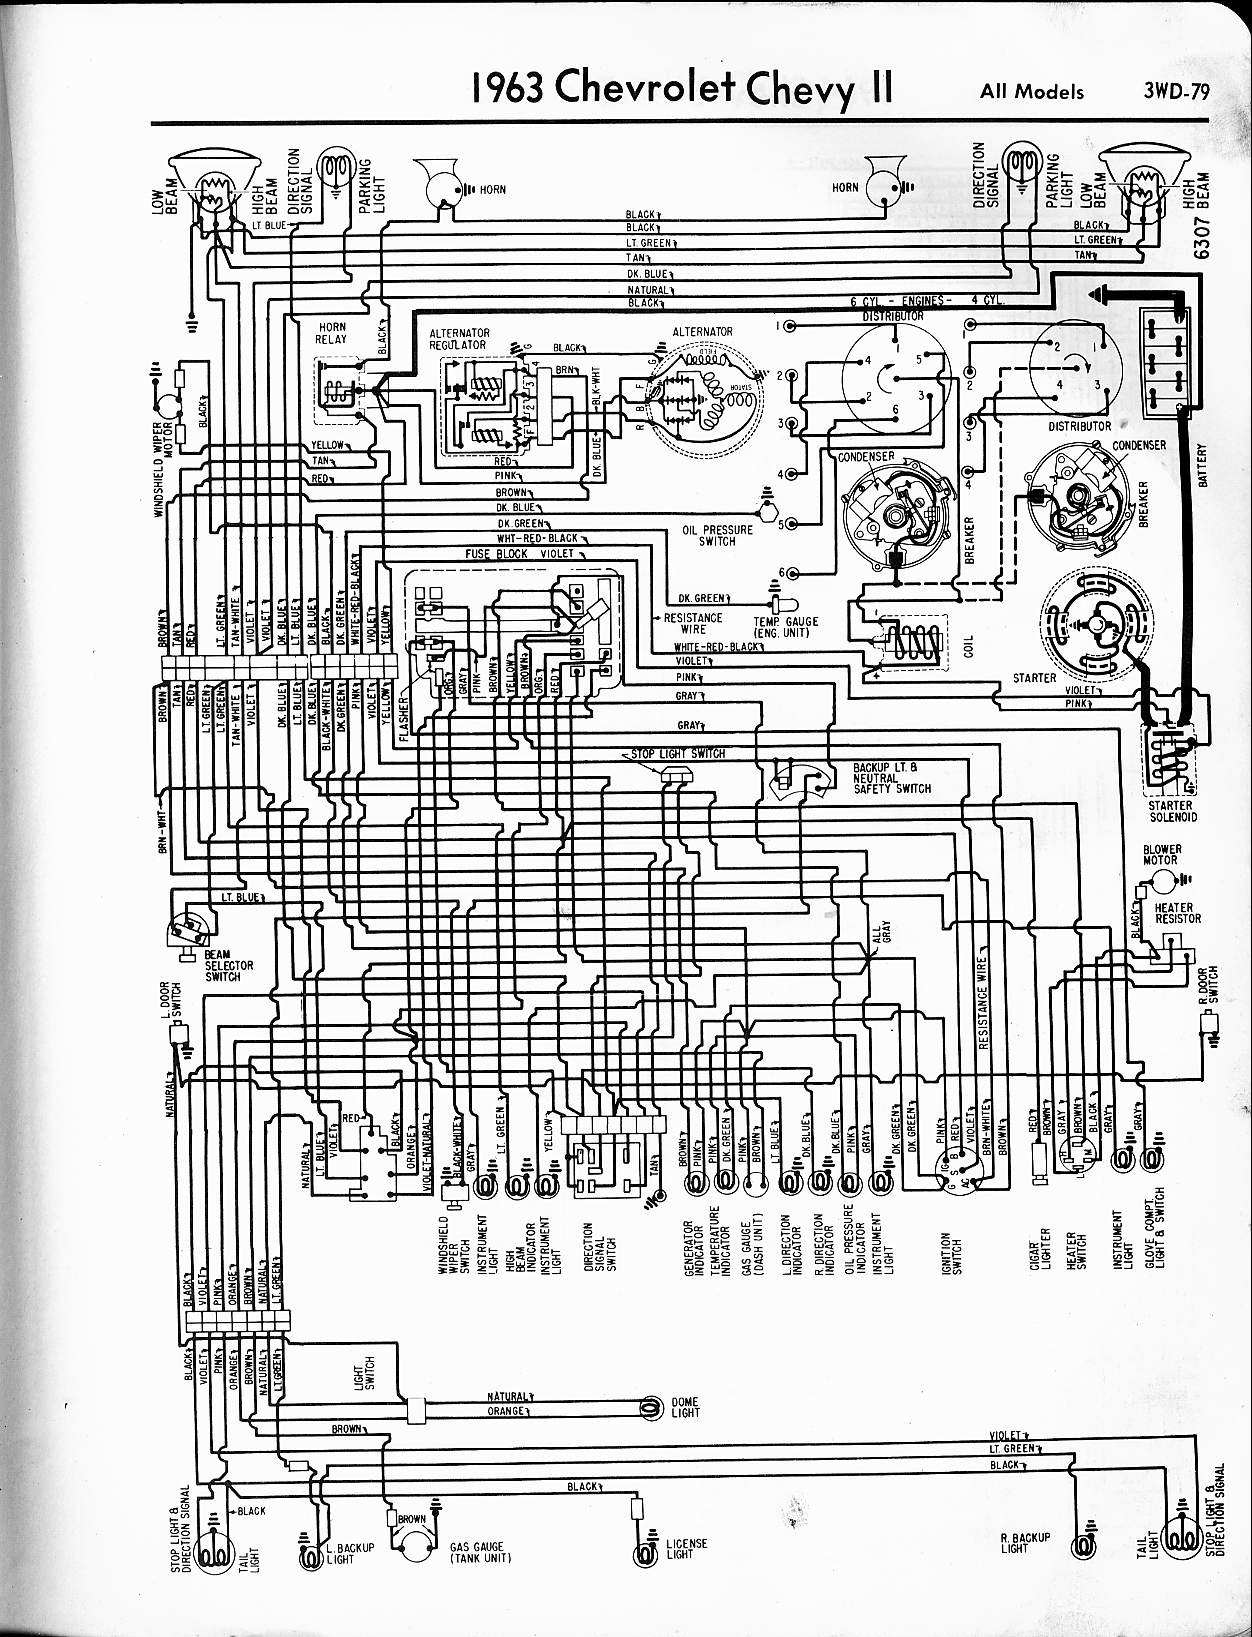 1970 Chevy Impala Engine Wiring Diagram Diy Enthusiasts Window 2001 Custom 57 65 Diagrams Rh Oldcarmanualproject Com 1965 2008